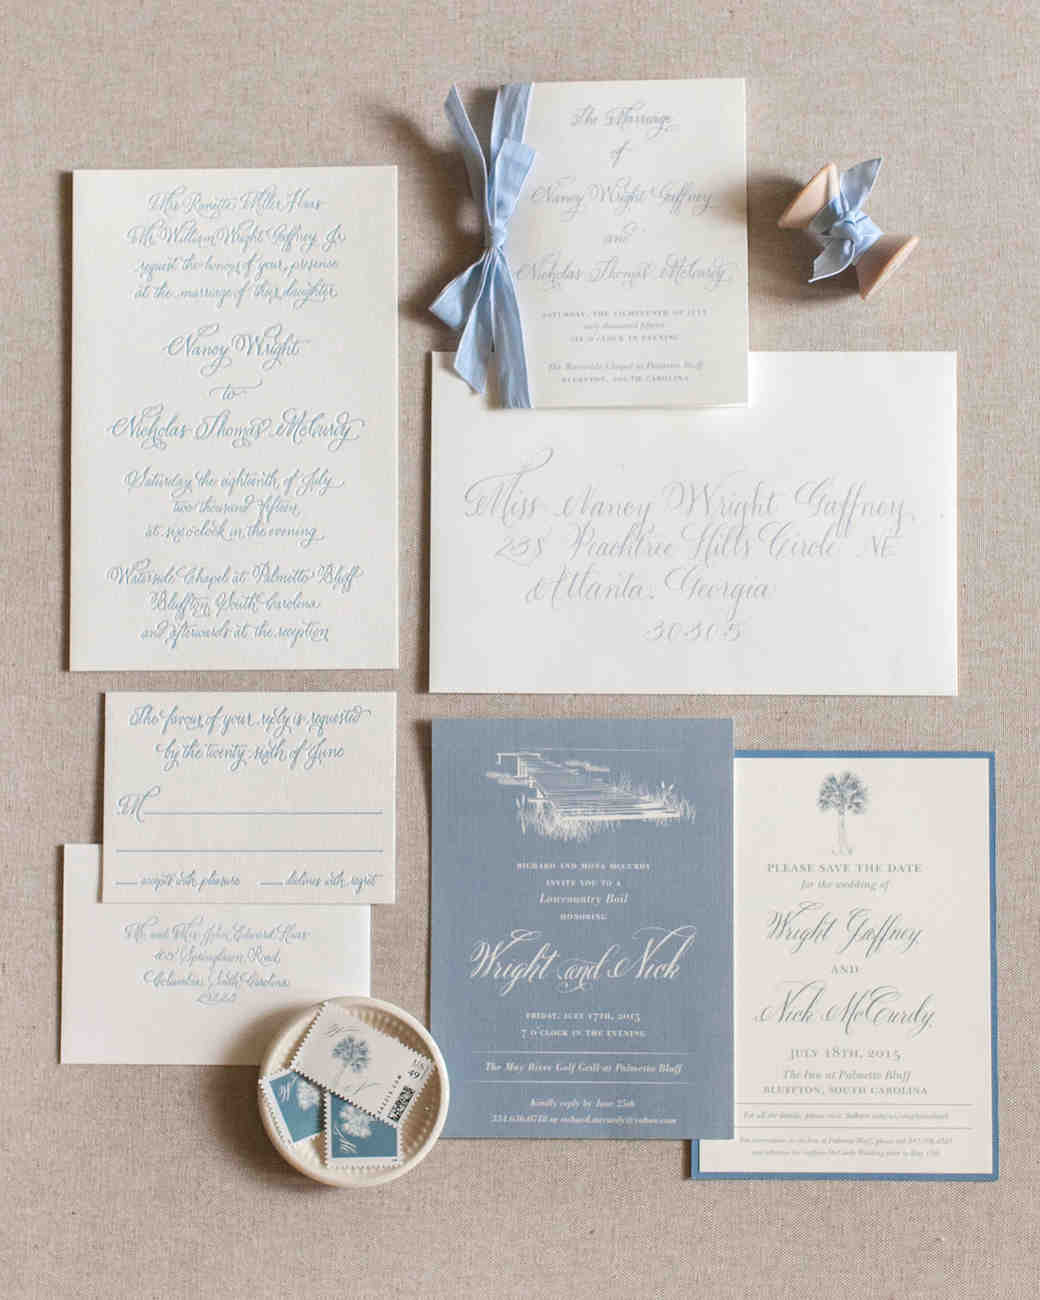 classic invitation hues of blue writing and borders